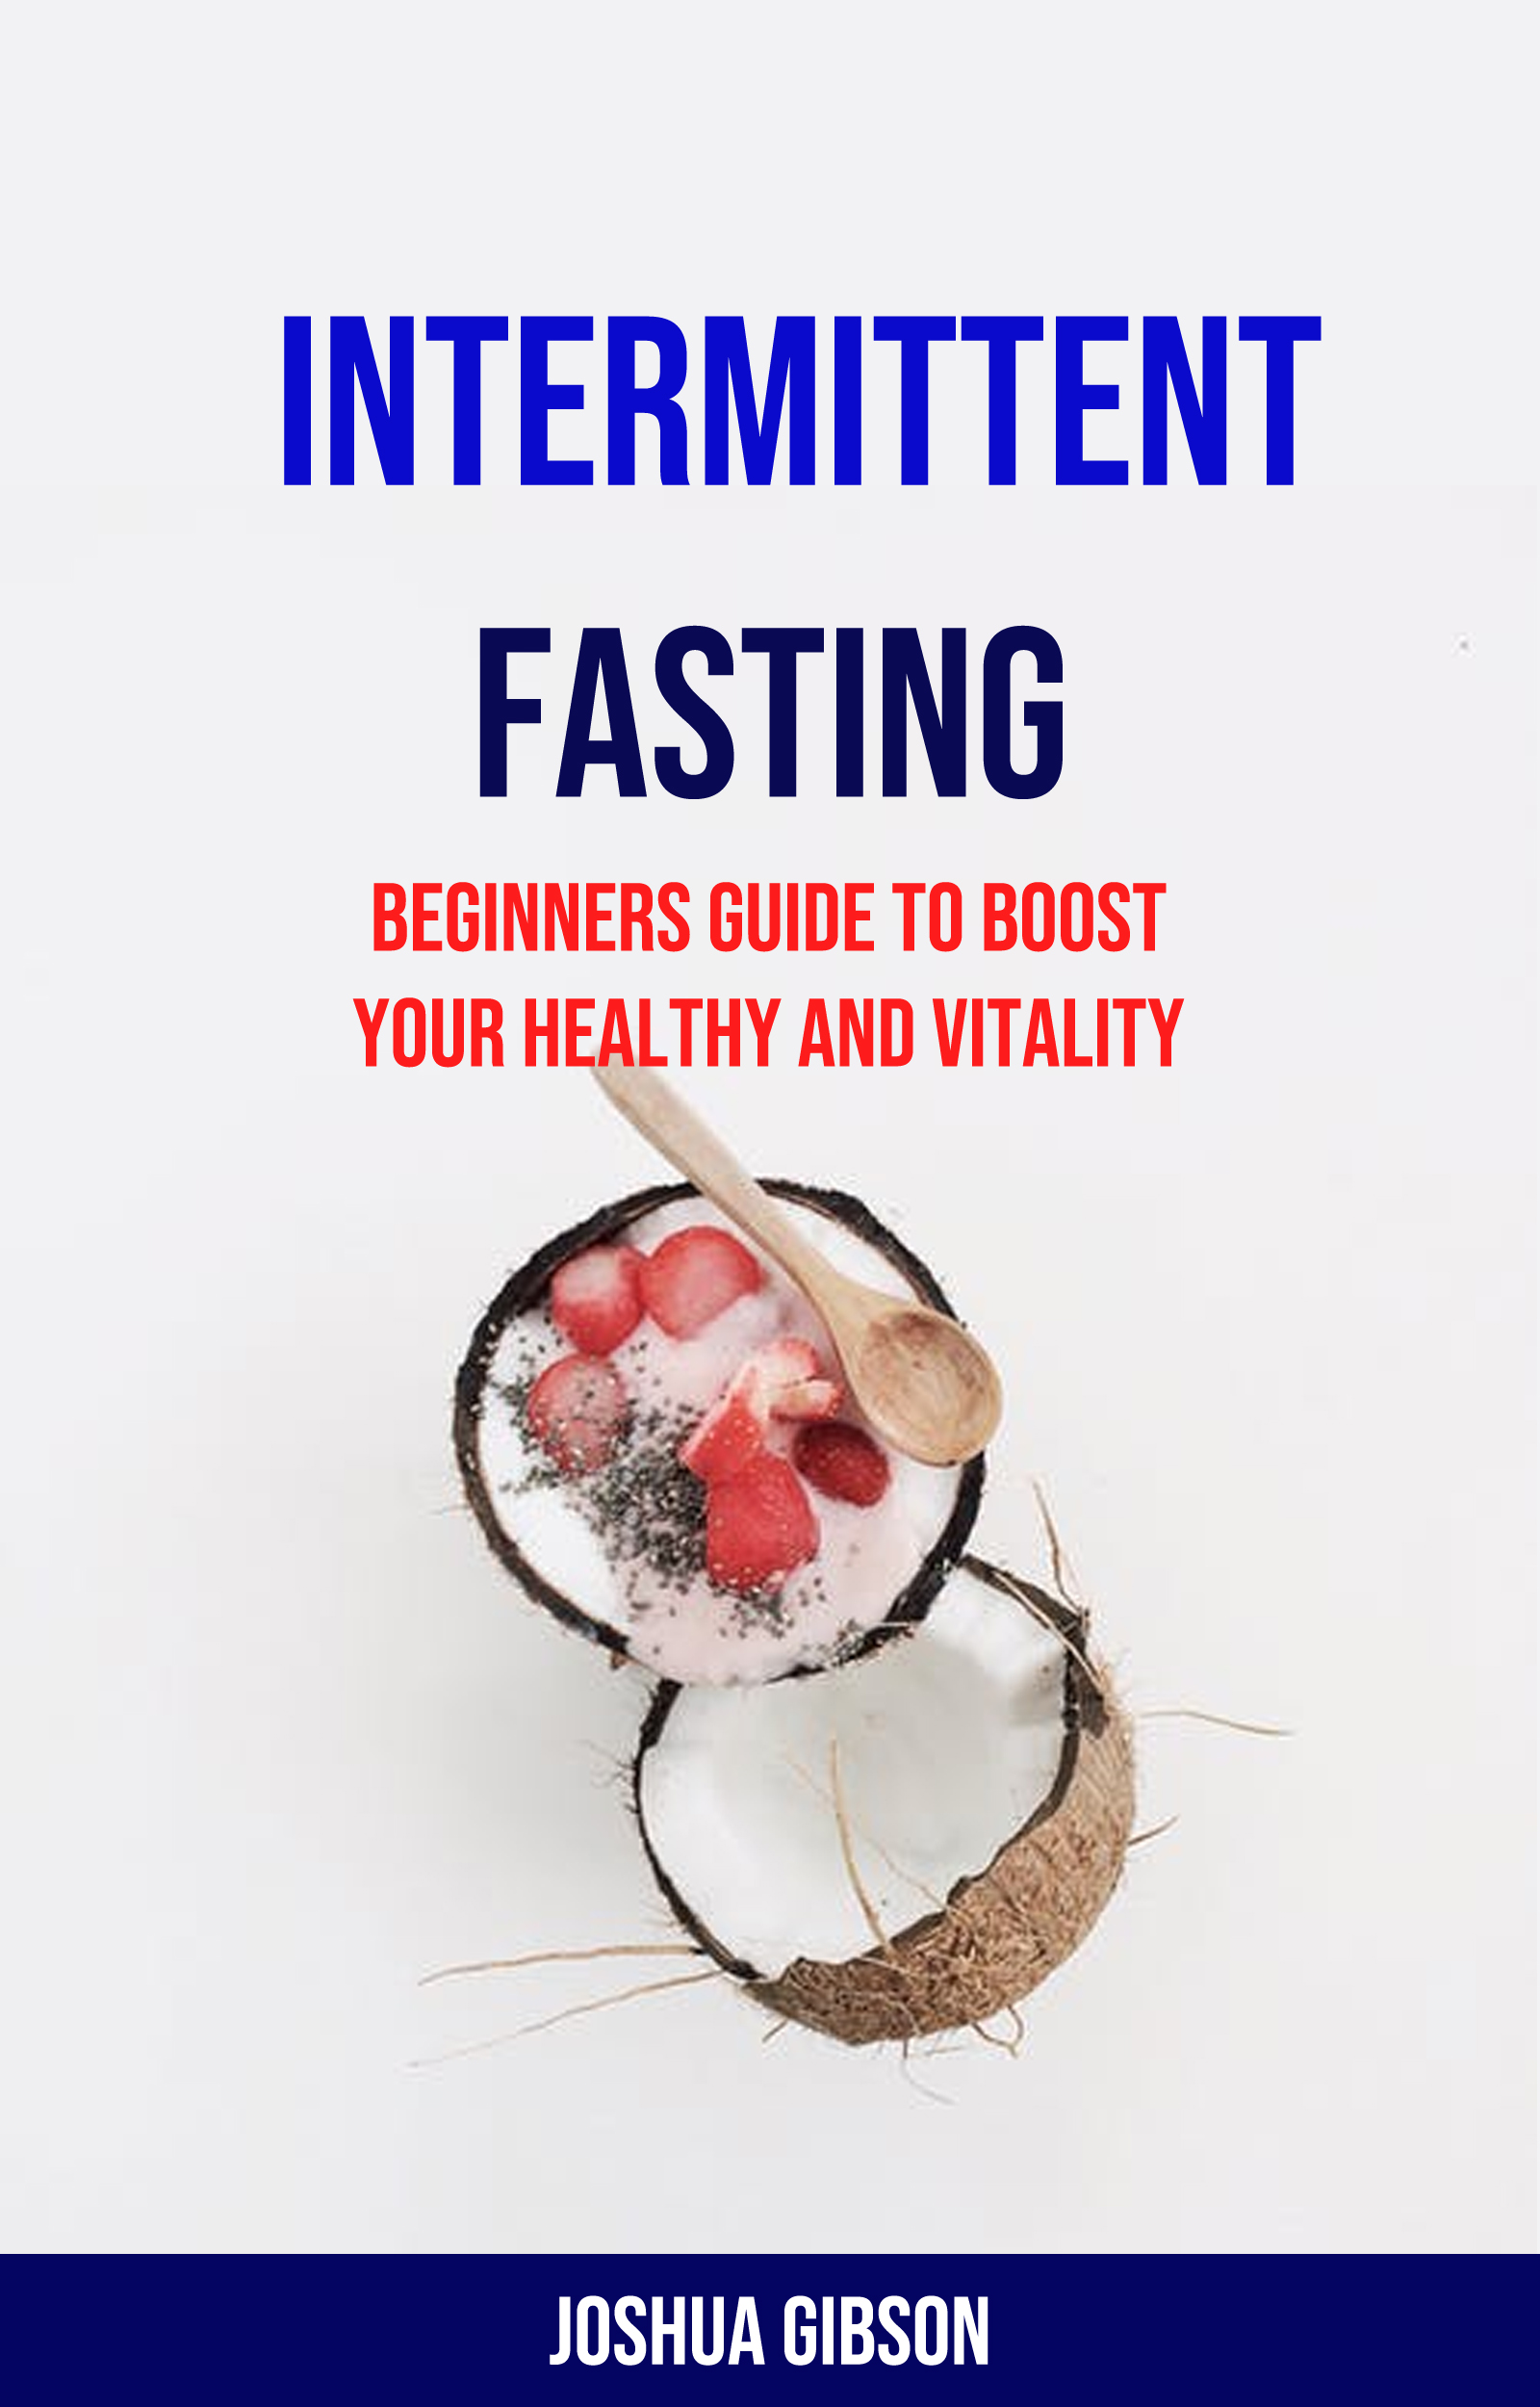 Intermittent fasting: beginners guide to boost your healthy and vitality